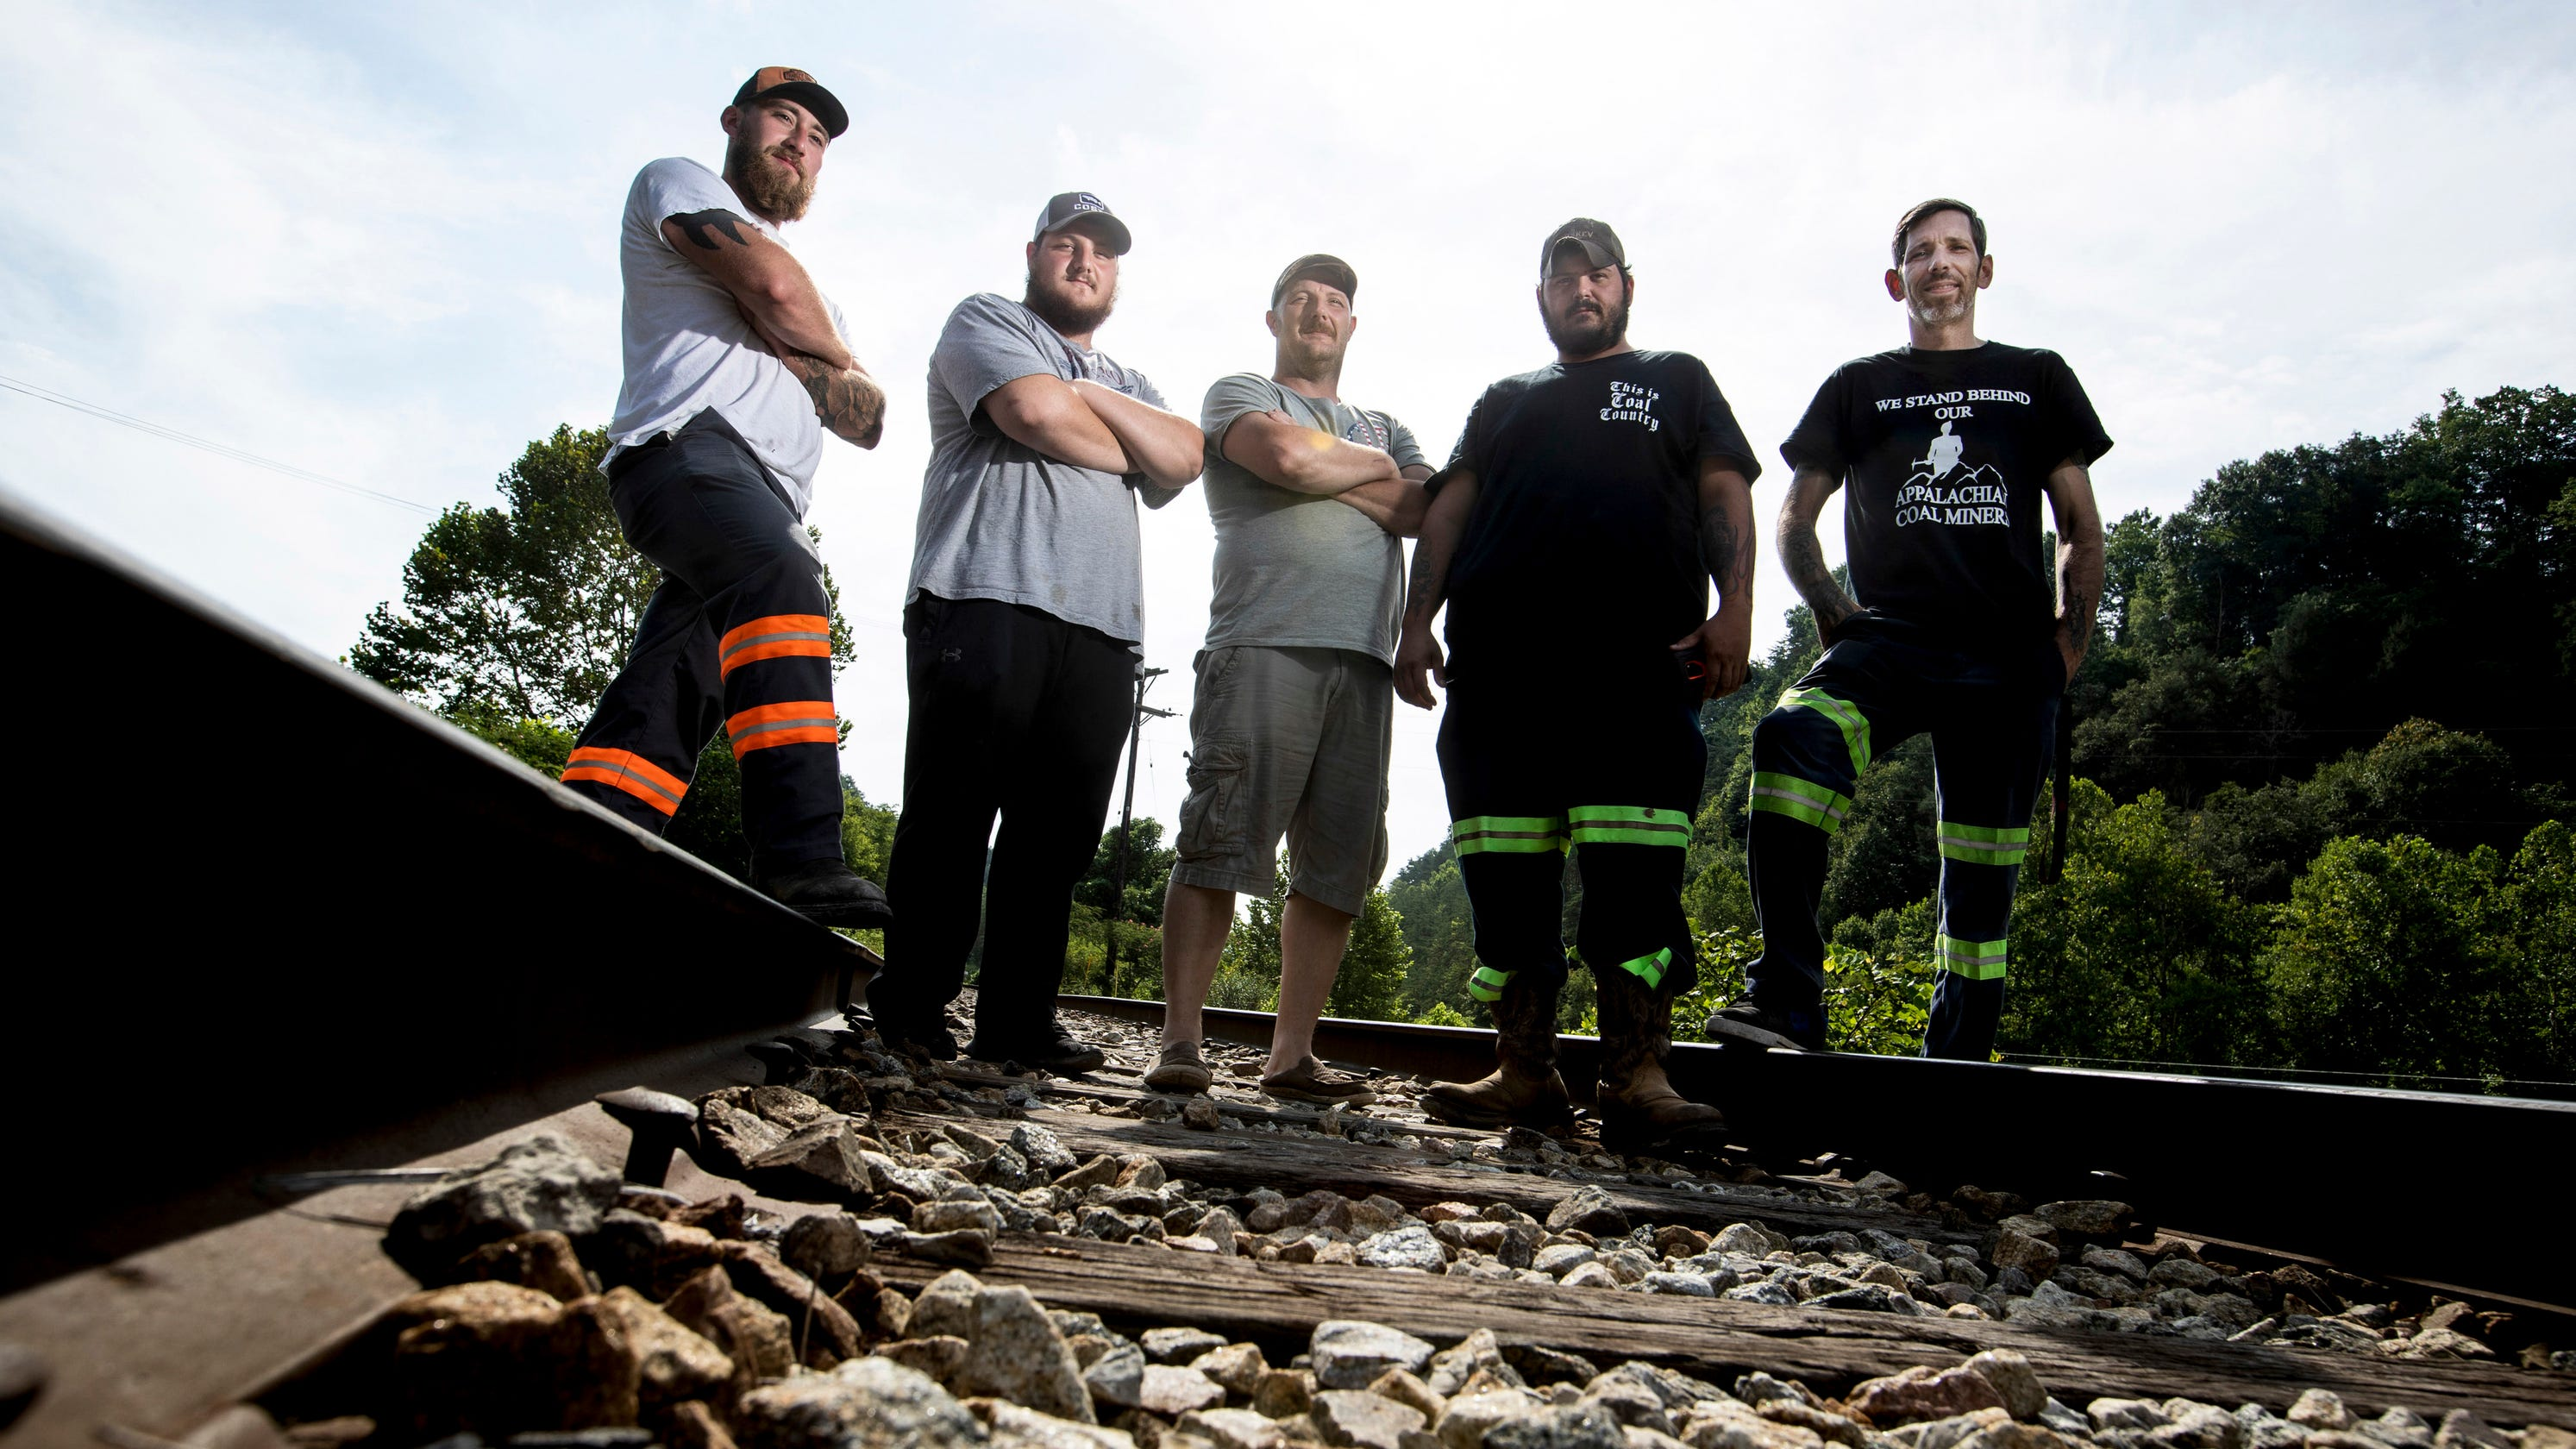 Laid-off coal miners could get some back pay and see some